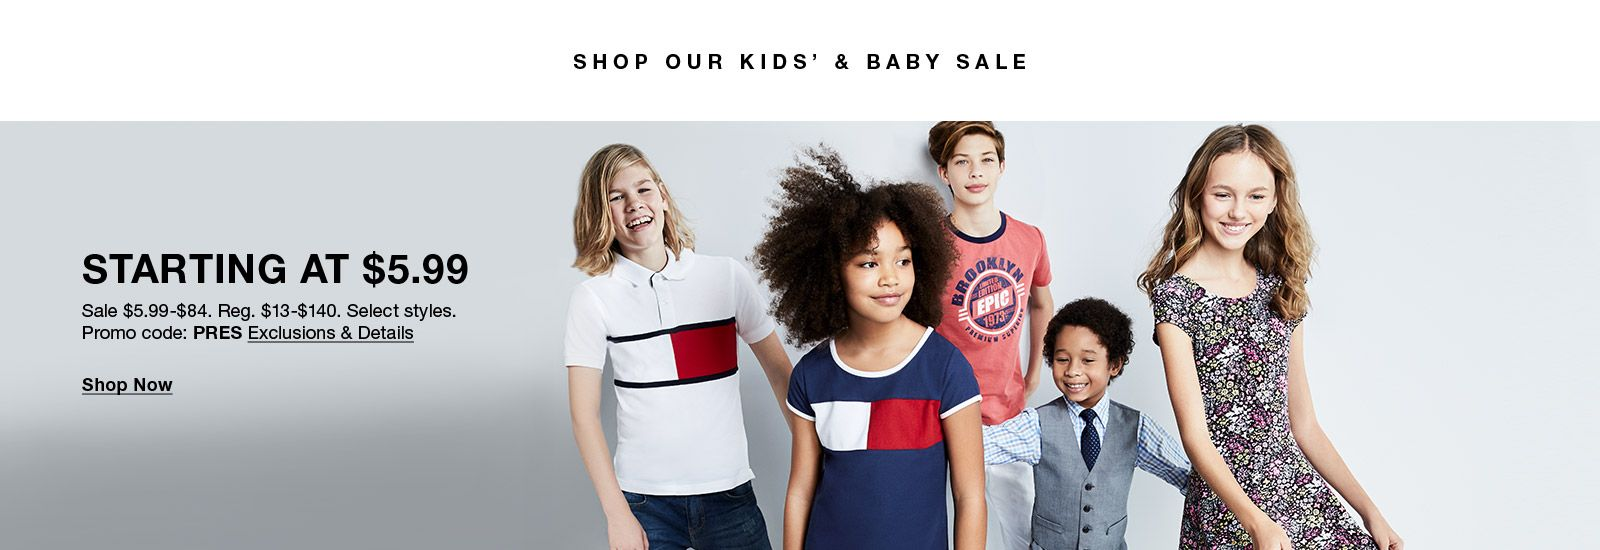 Shop our Kids' and Baby Sale, Starting at $5.99, Sale $5.99-$84, Select styles, Promo code: PRES Exclusions & Details. Shop Now